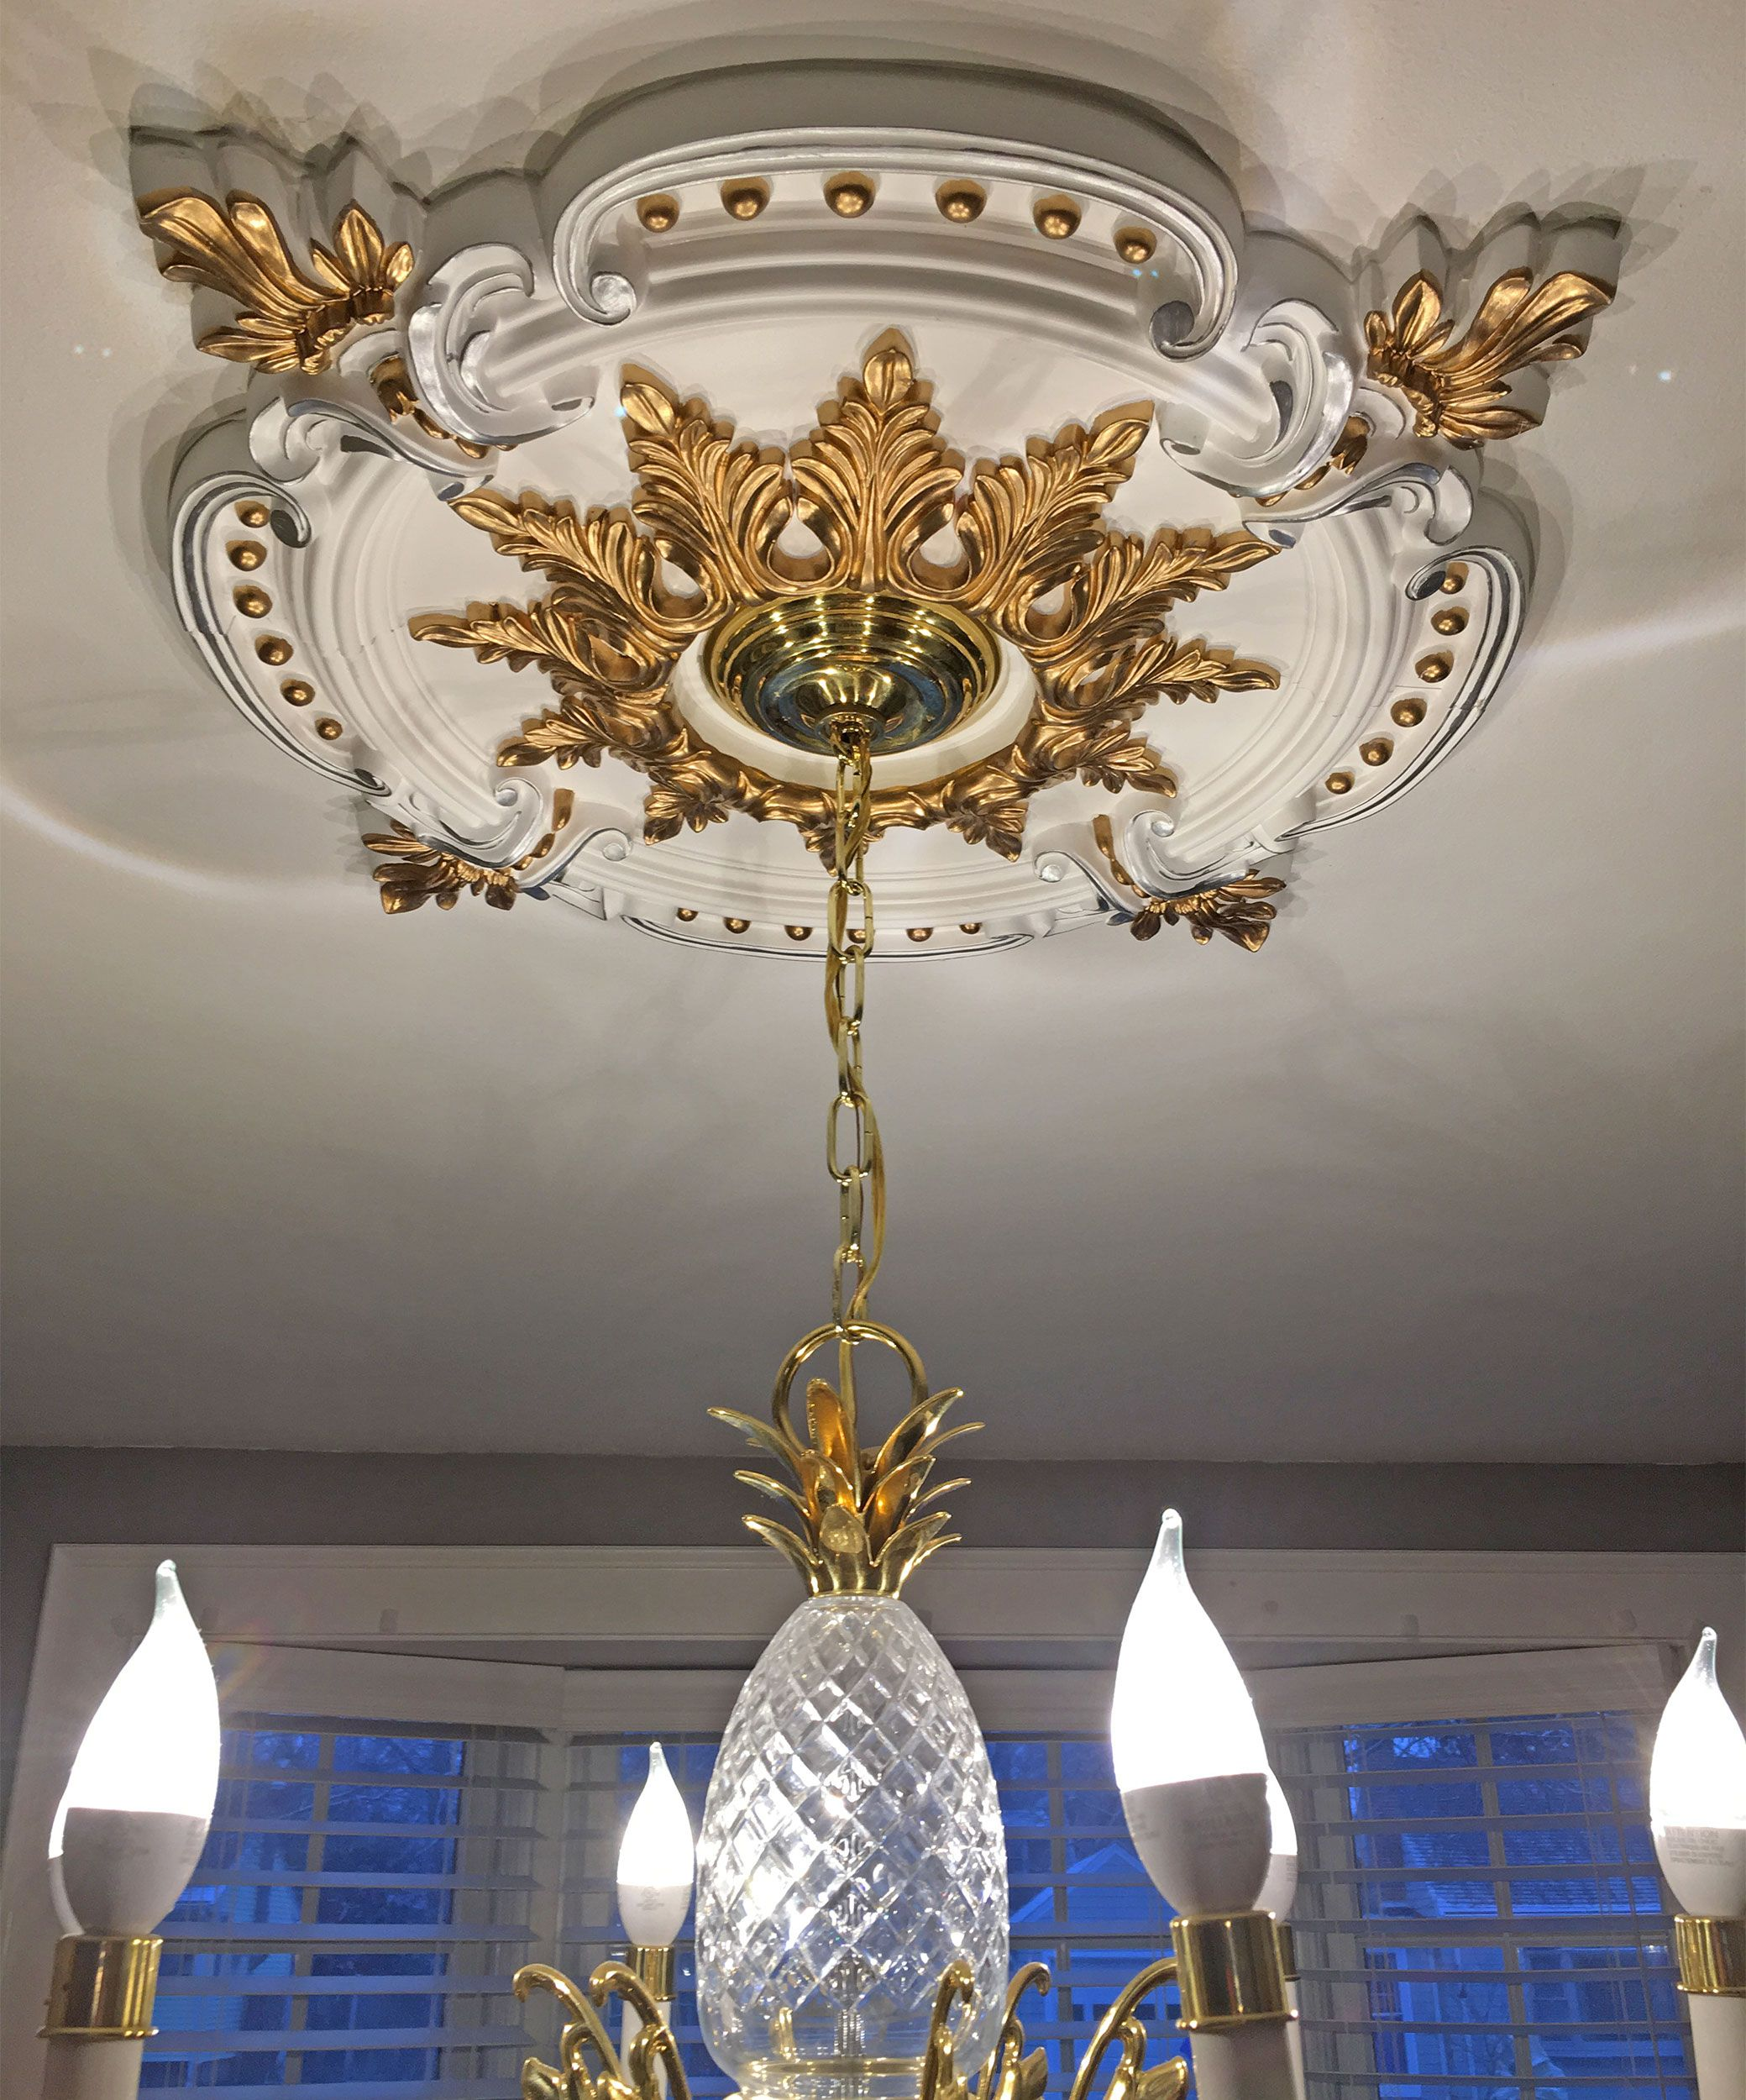 granada ekena pictures project architectural depot medallion millwork chandelier ceiling